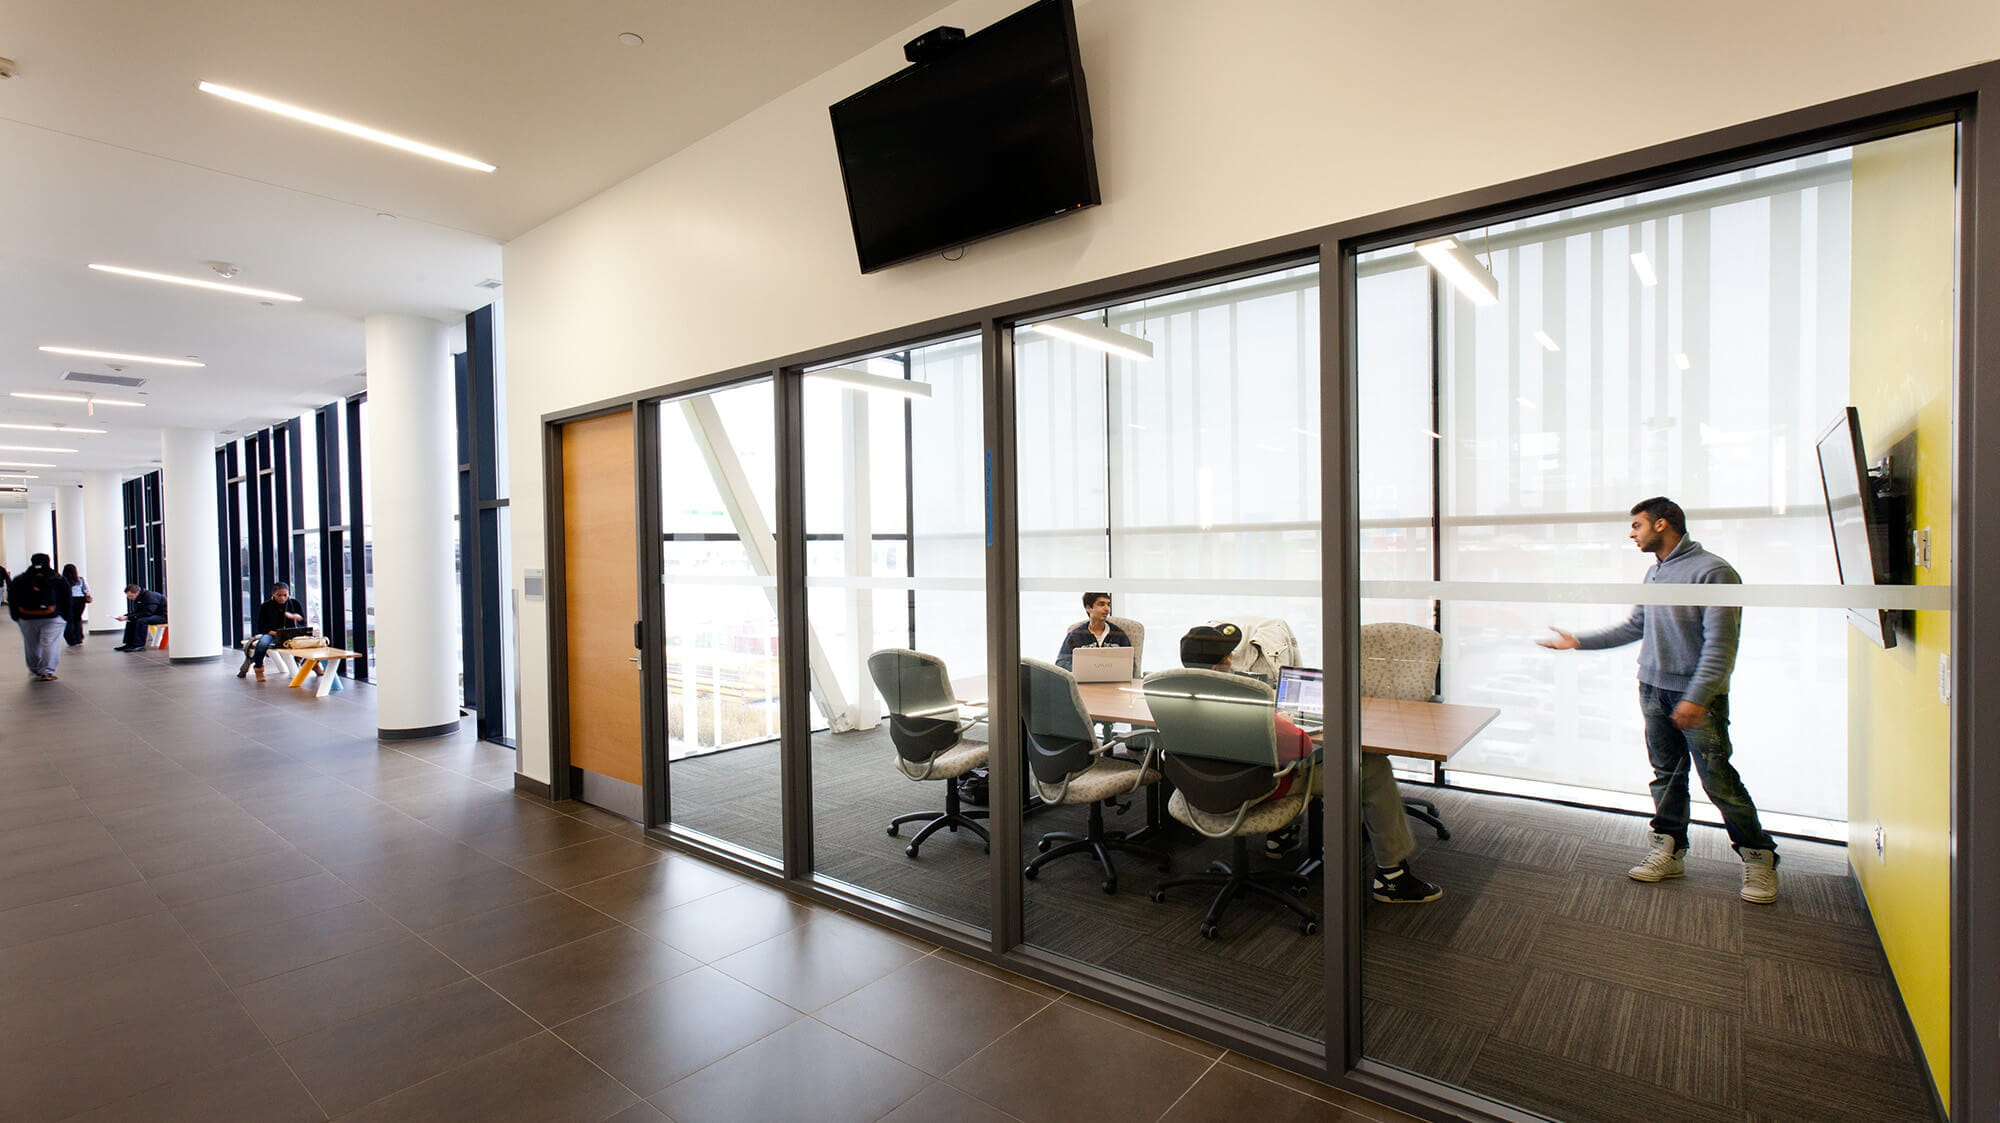 A hallway looking into a glass-walled group study room with a table and students inside.